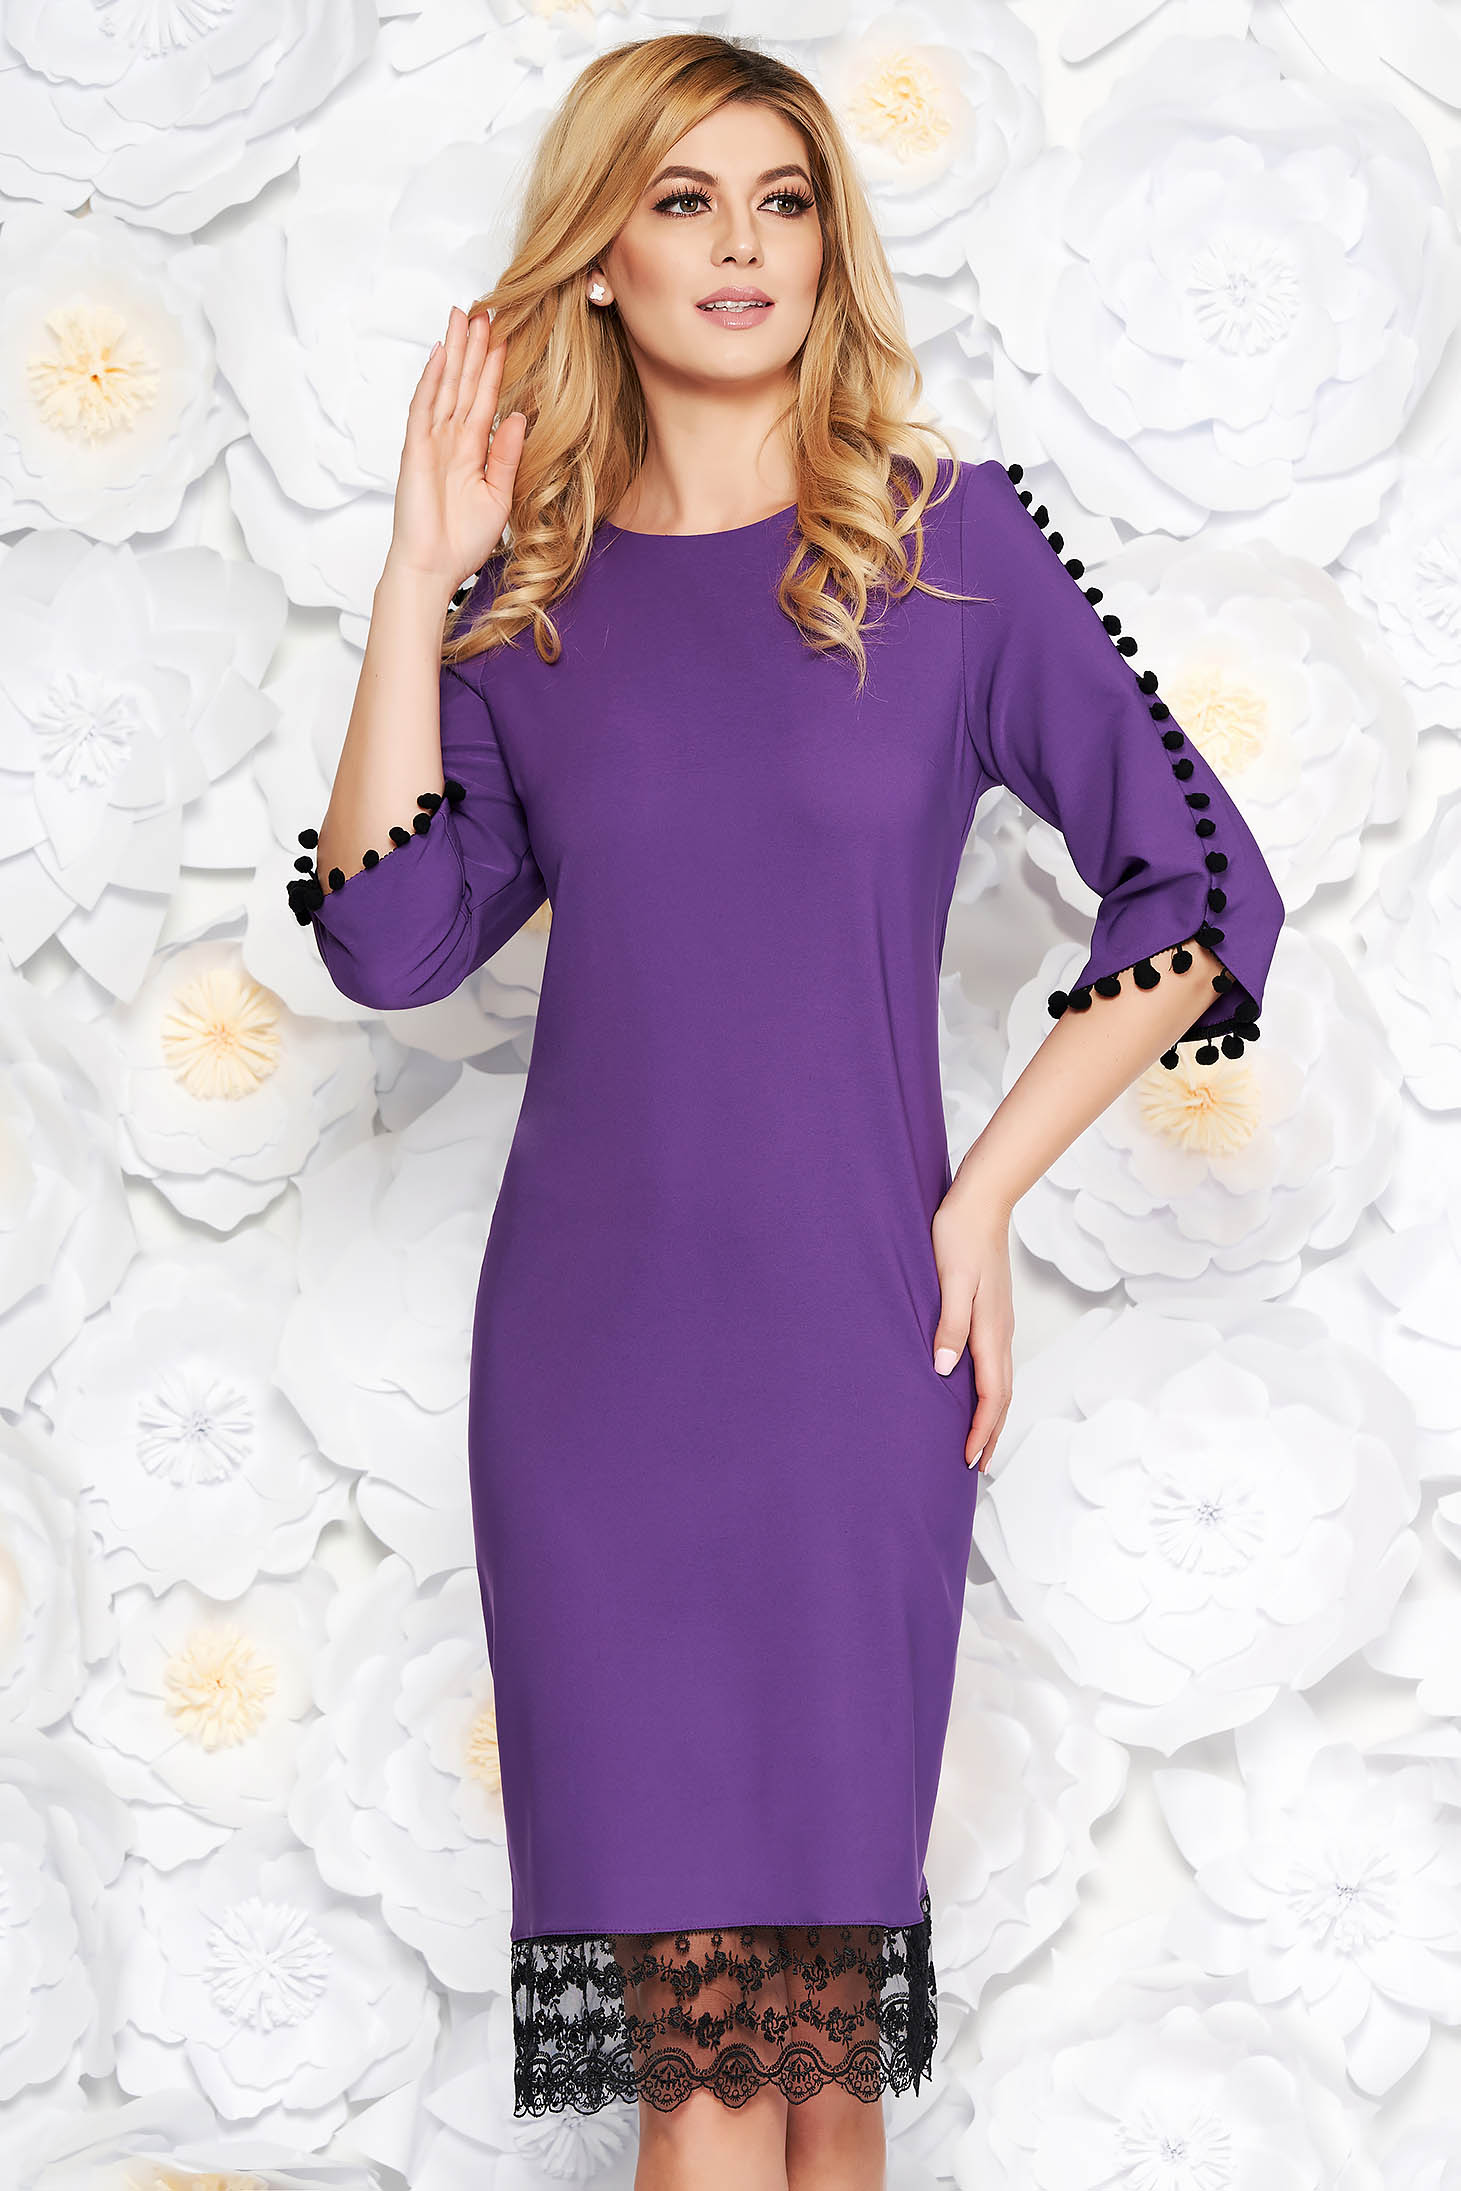 Purple elegant flared dress slightly elastic fabric with lace details with tassels